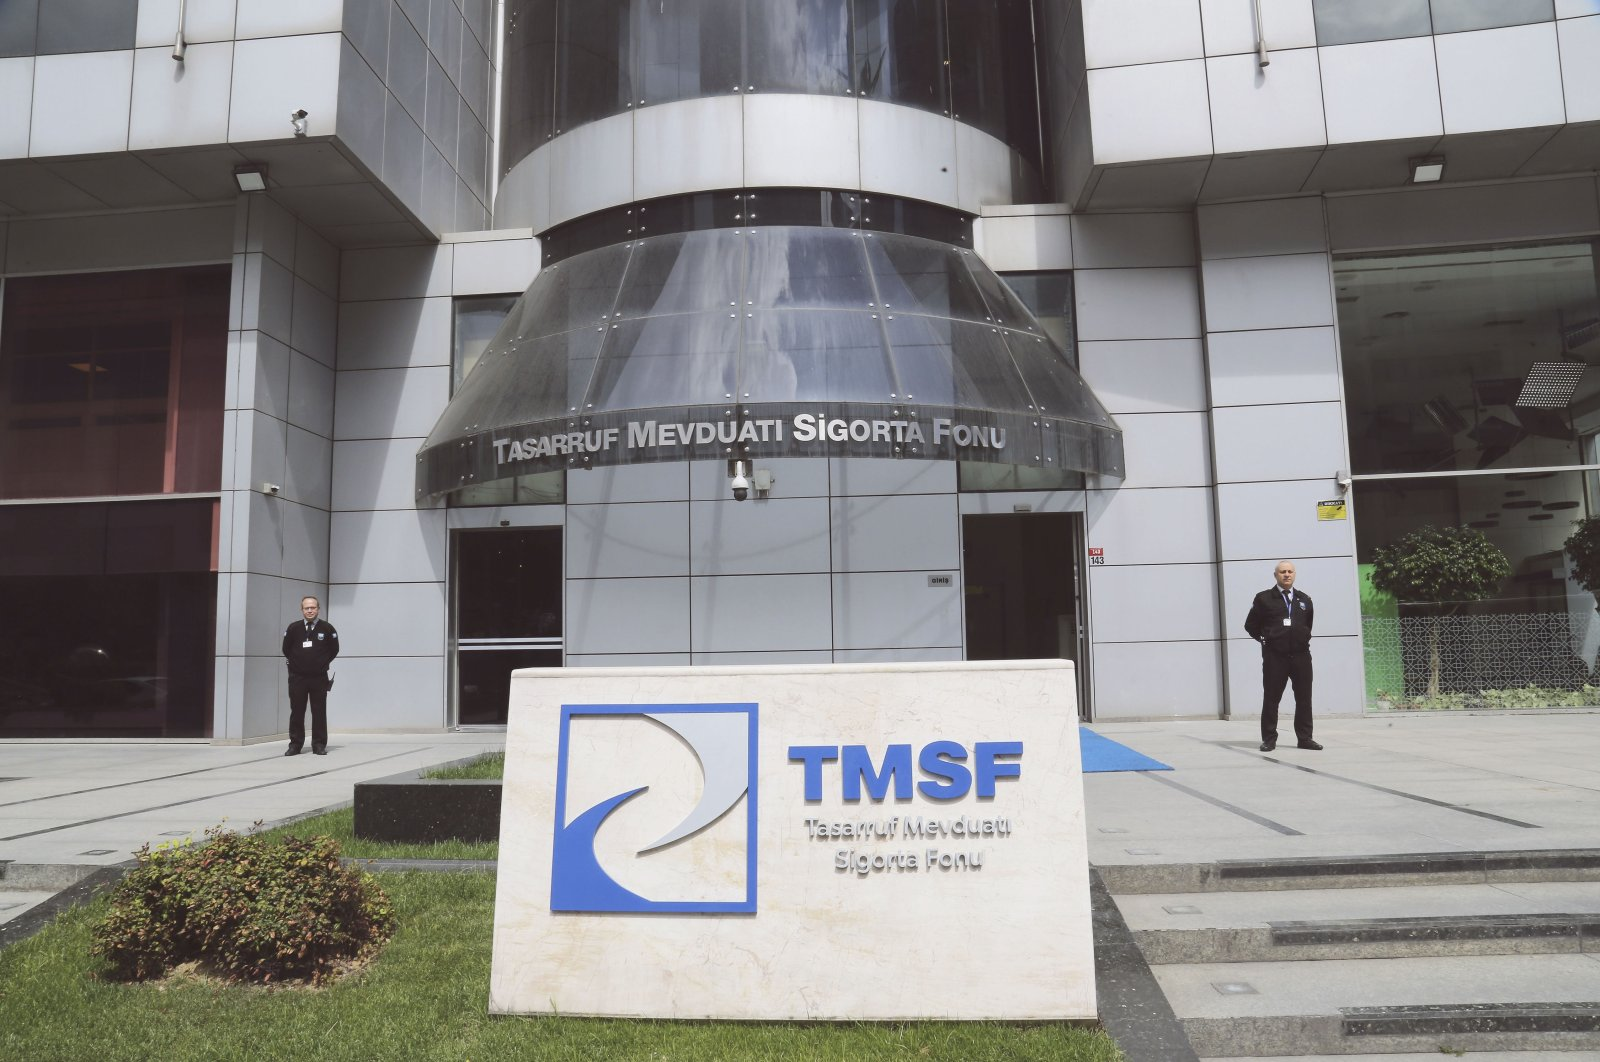 The TMSF building in Istanbul, Turkey, Sept. 23, 2020. (Sabah File Photo)